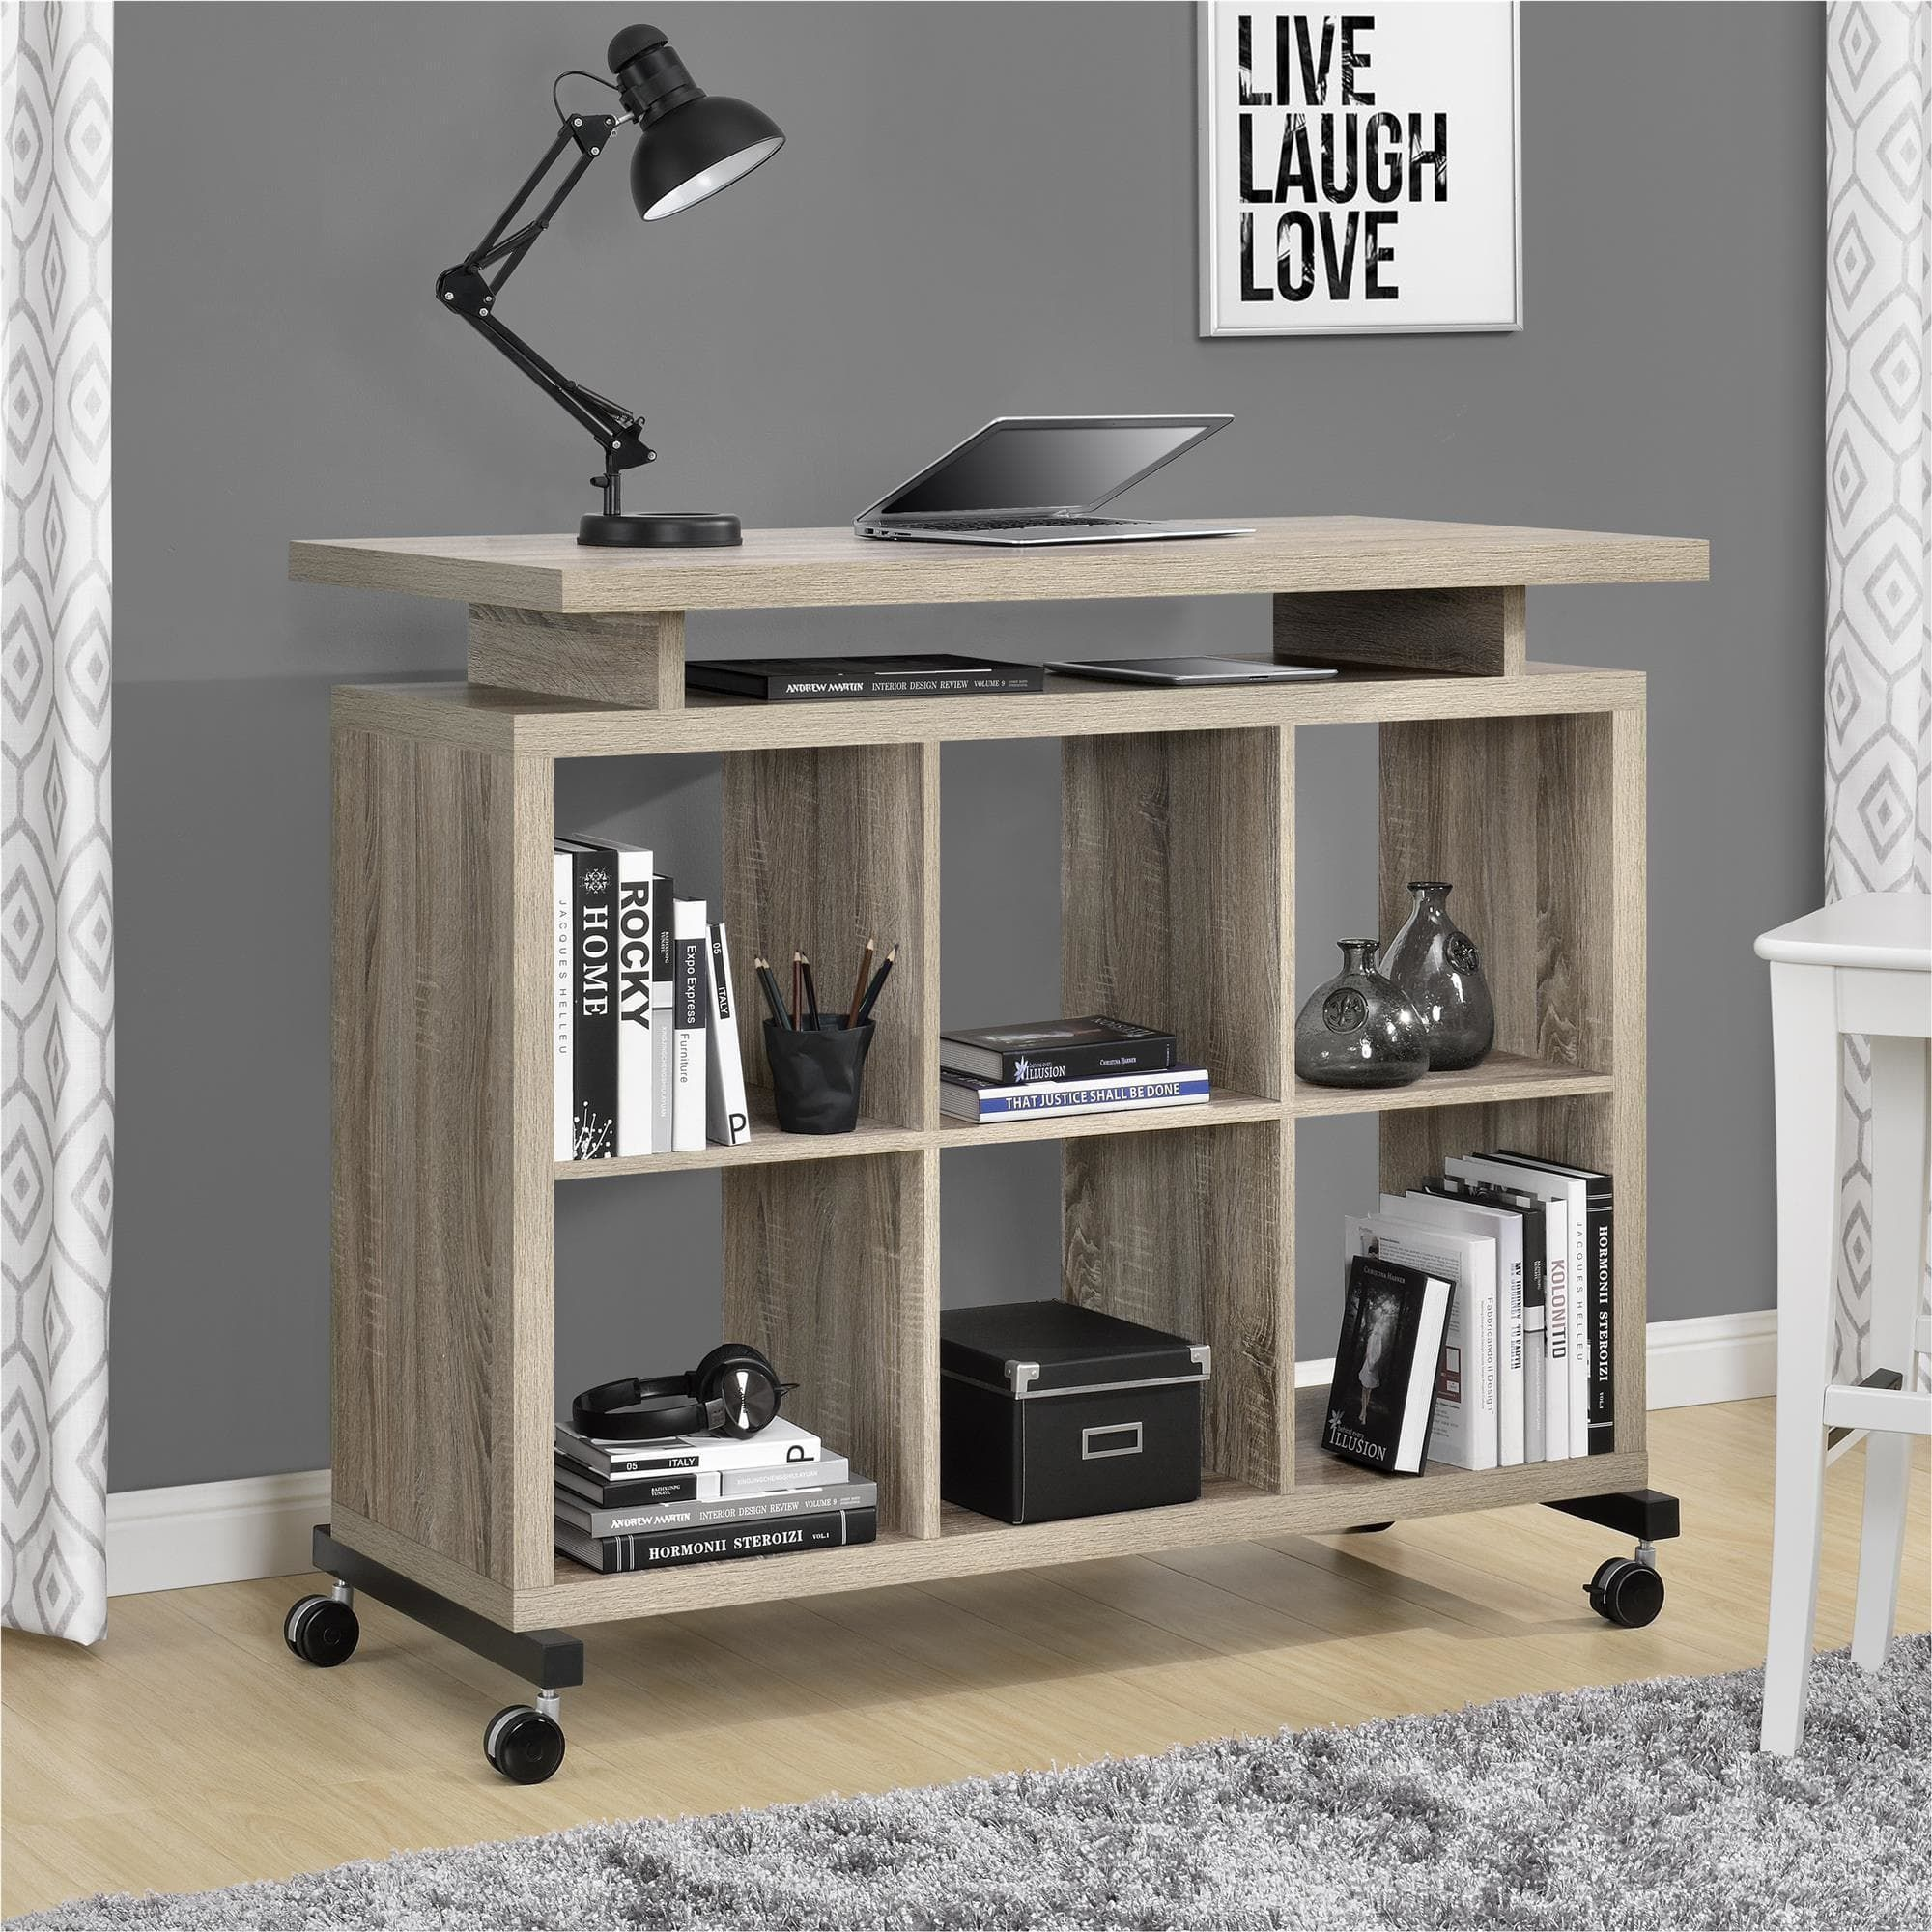 STANDING DESK Thats Also Gorgeous Shelves 200 And Payment Plan Available Wheels Optional Overstock Ameriwood Home Lincoln Sonoma Oak